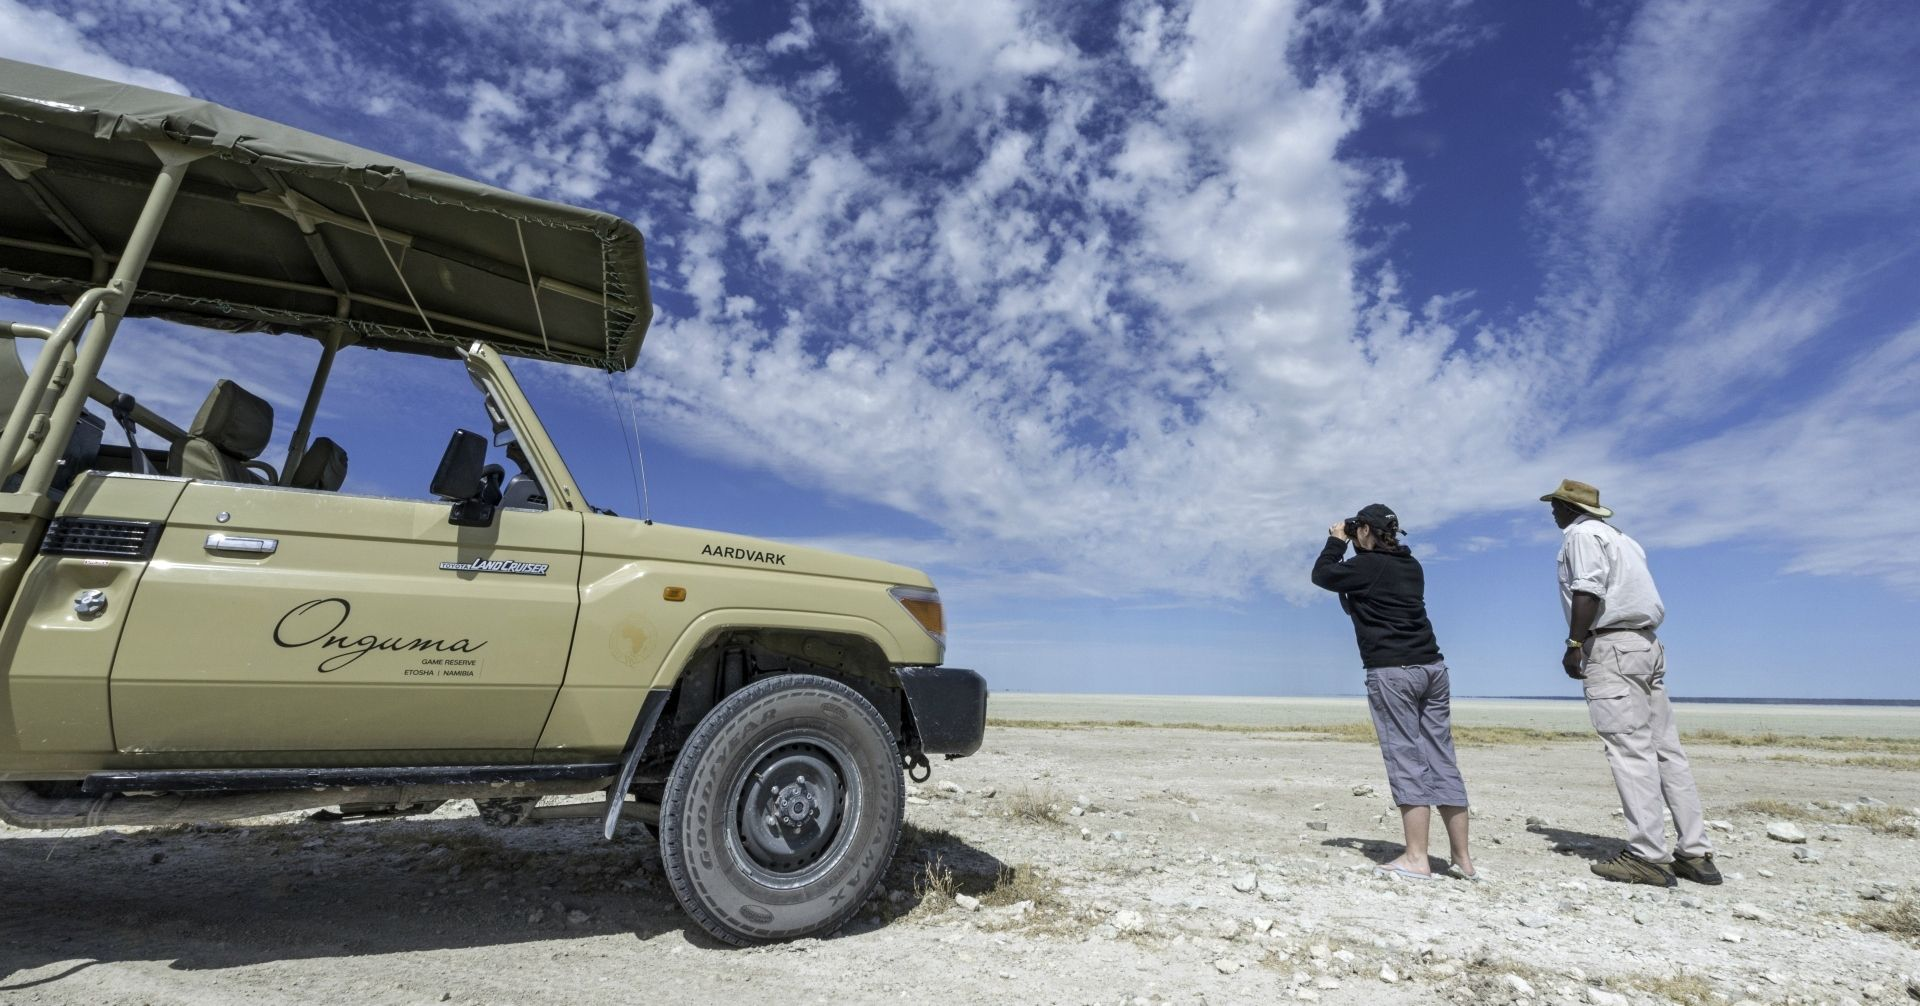 Game drives in Etosha